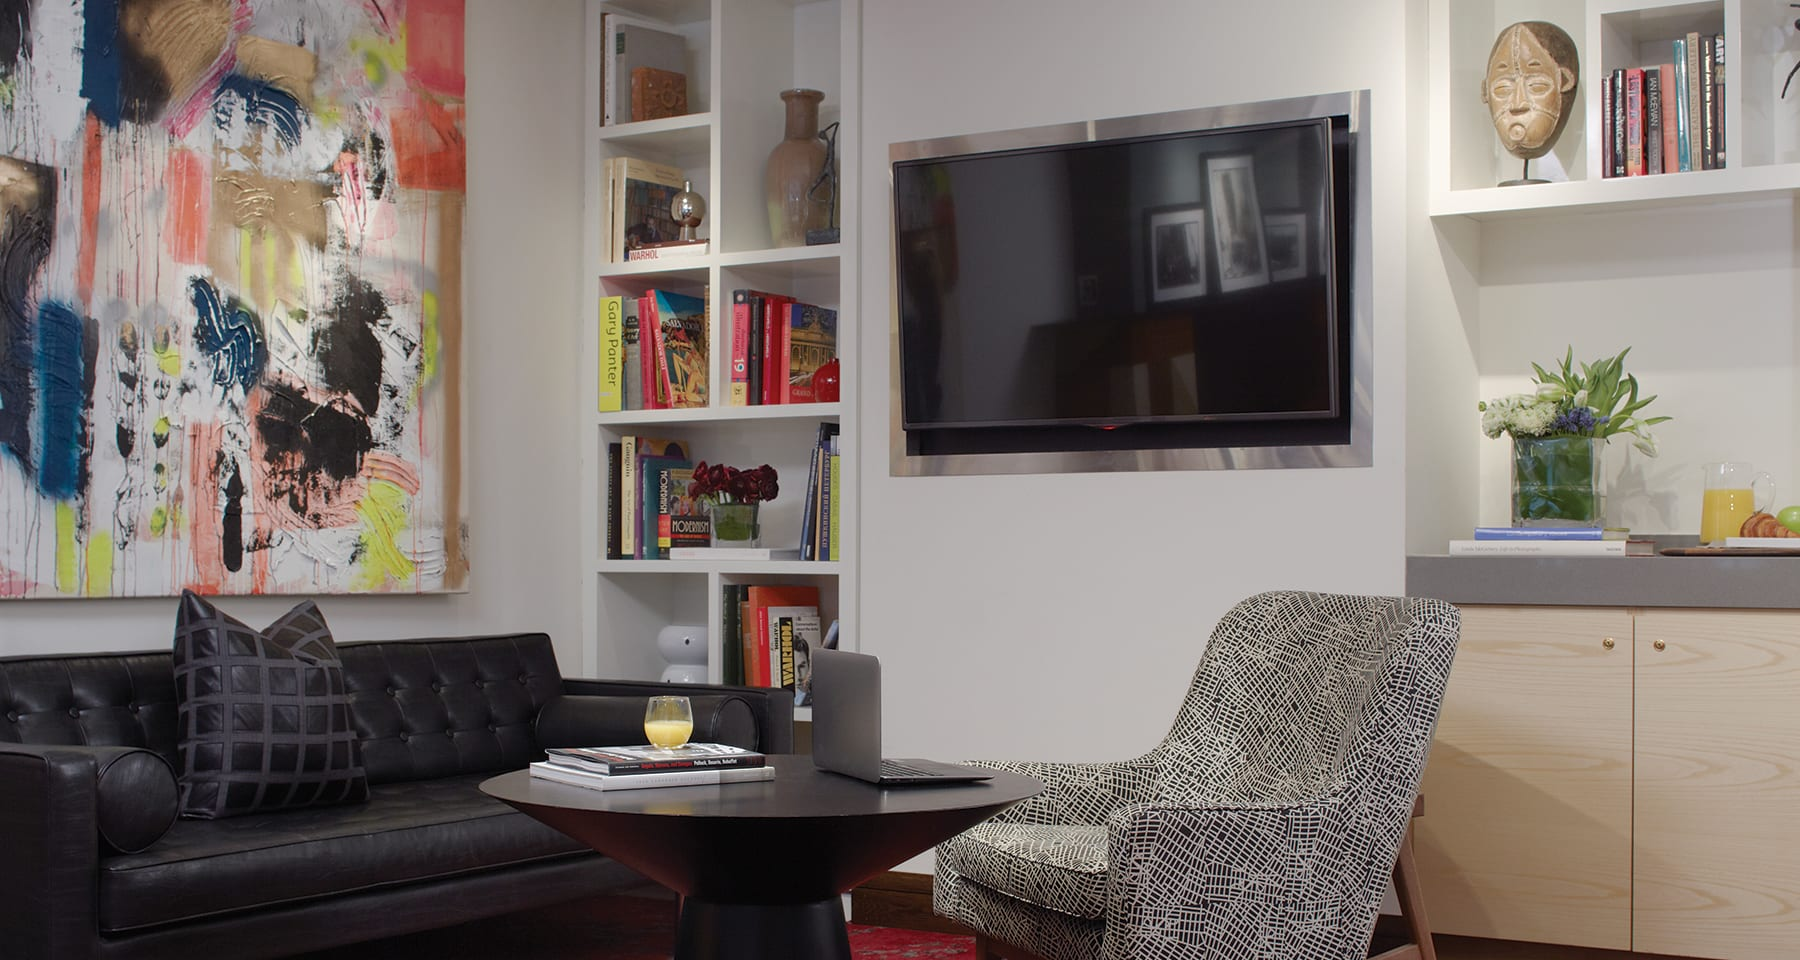 Corner of The Den, inside Fifty Hotel and Suites. White shelving holding books is to the left of a flatscreen television. A large painting hangs above the wide couch at the side.